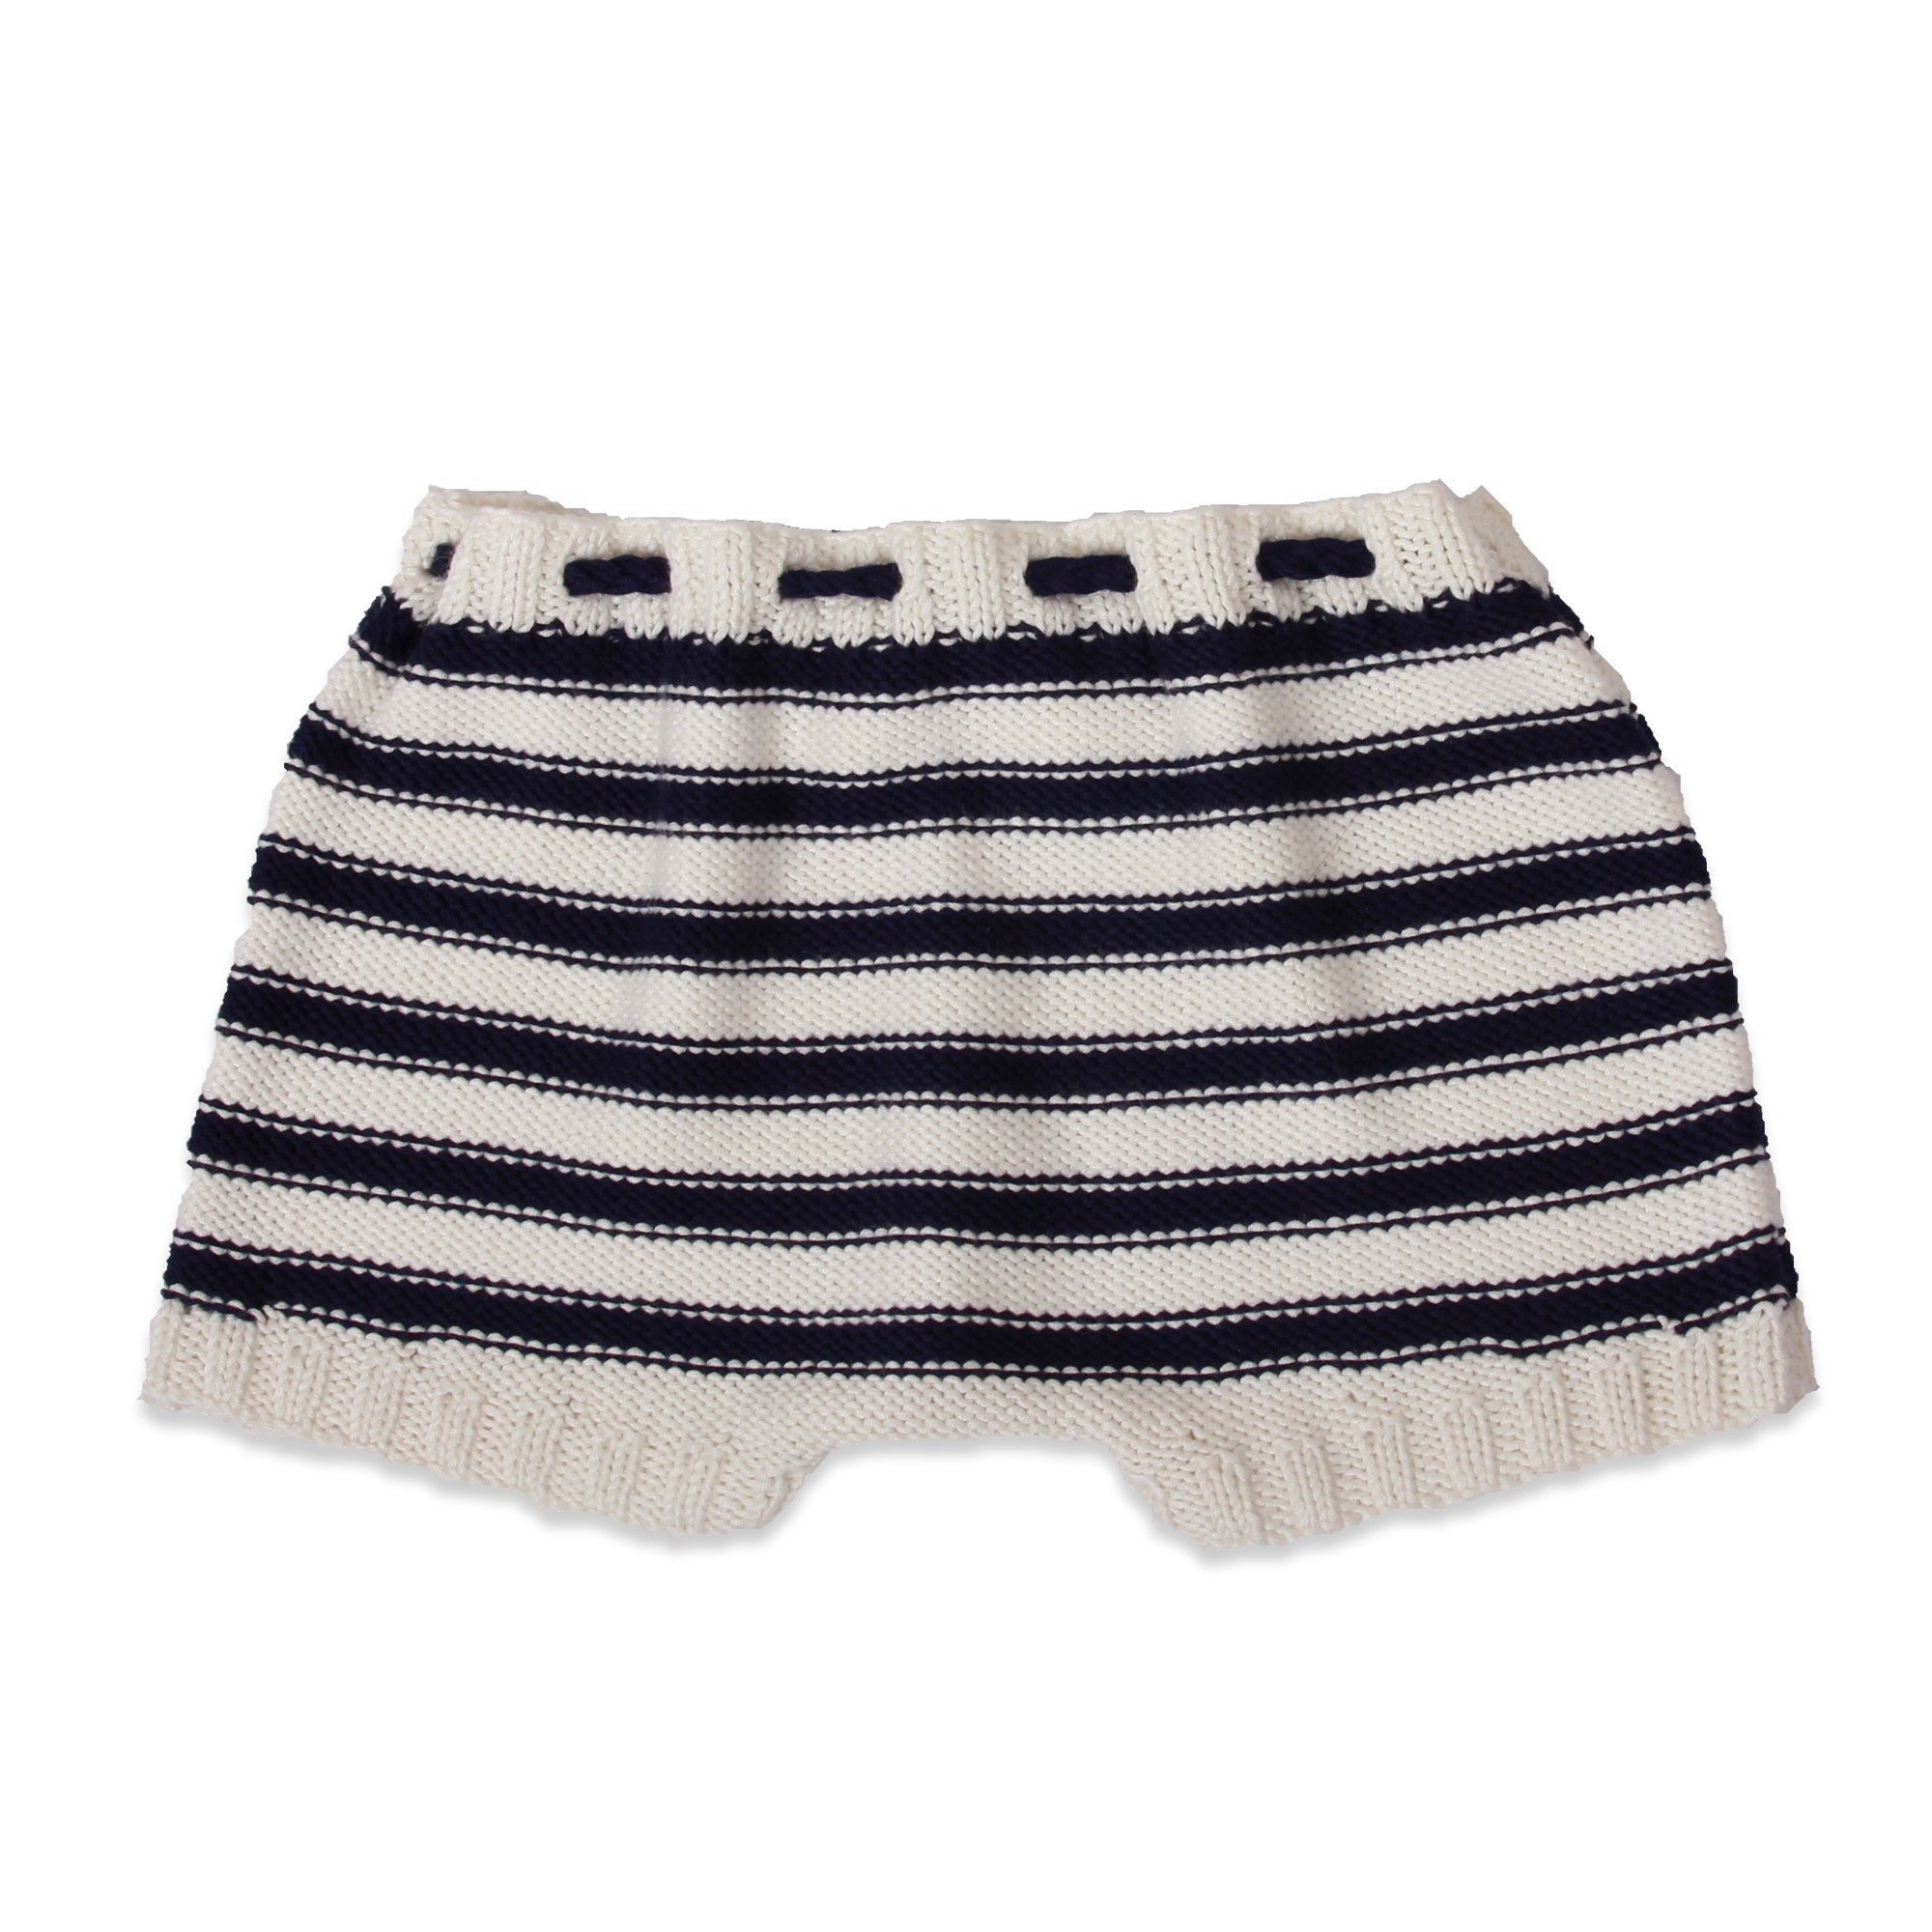 natural white and navy striped baby shorts